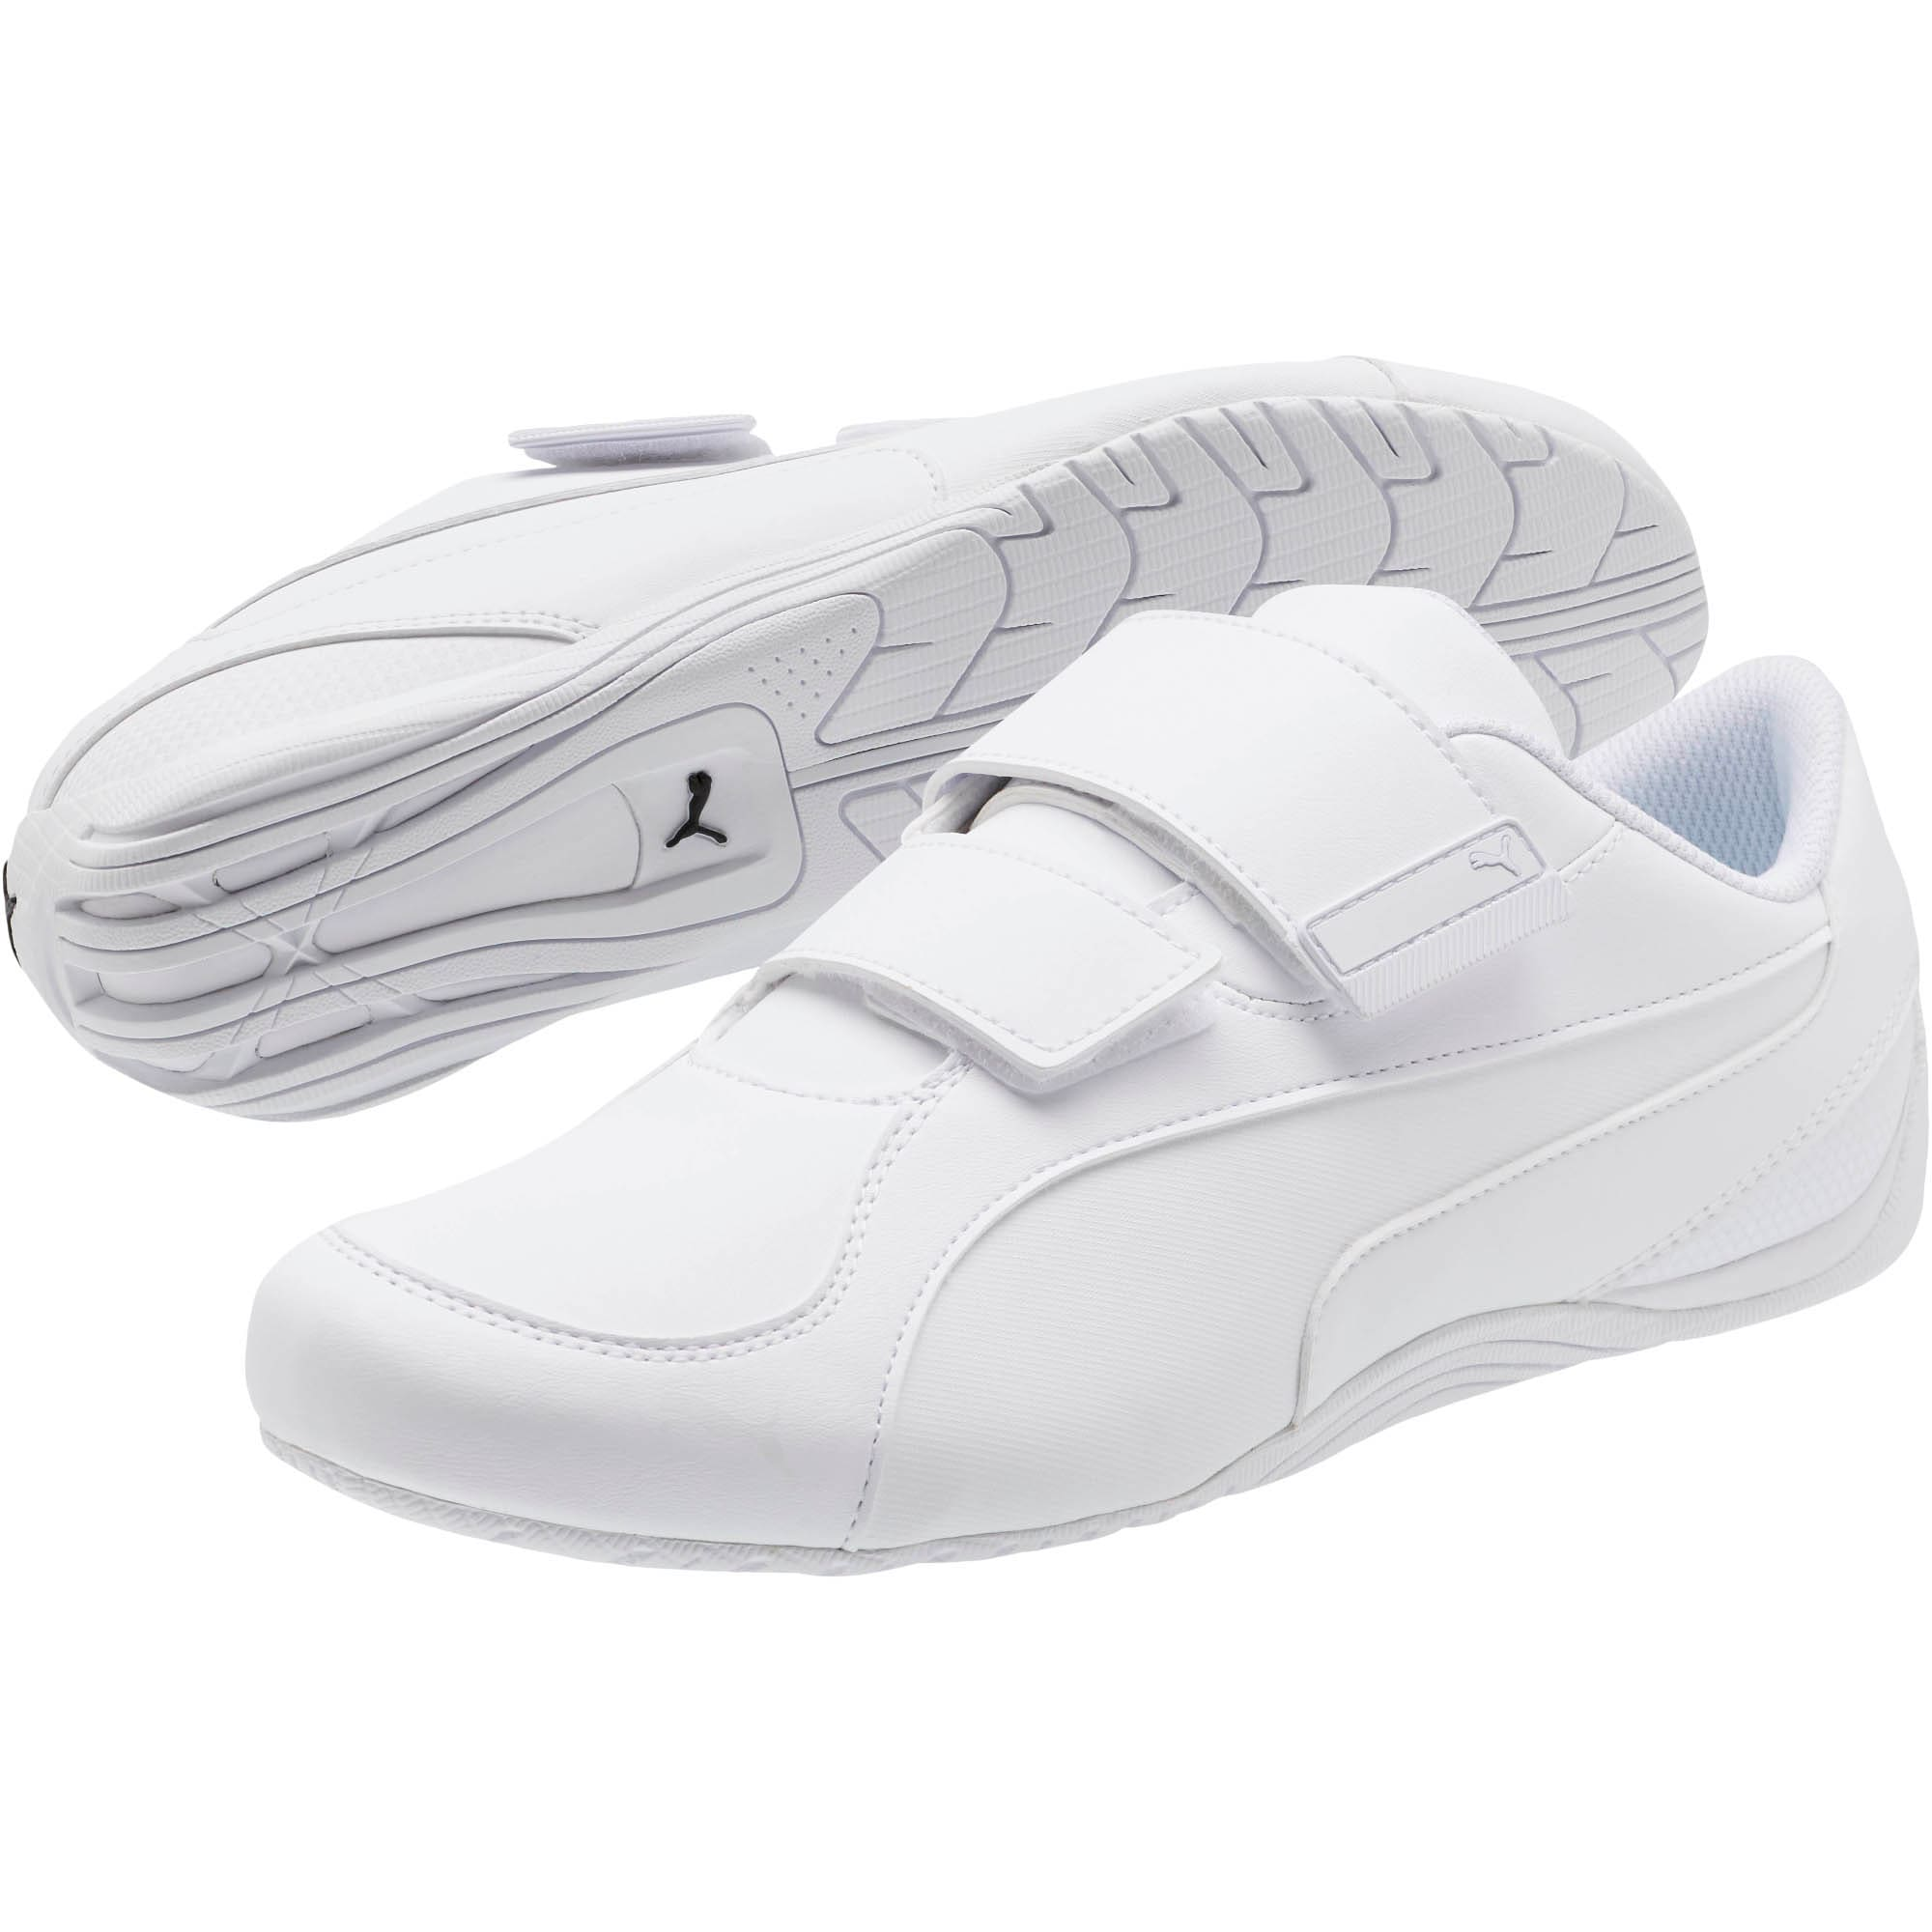 Thumbnail 2 of Drift Cat 5 AC Shoes, Puma White-Puma White, medium